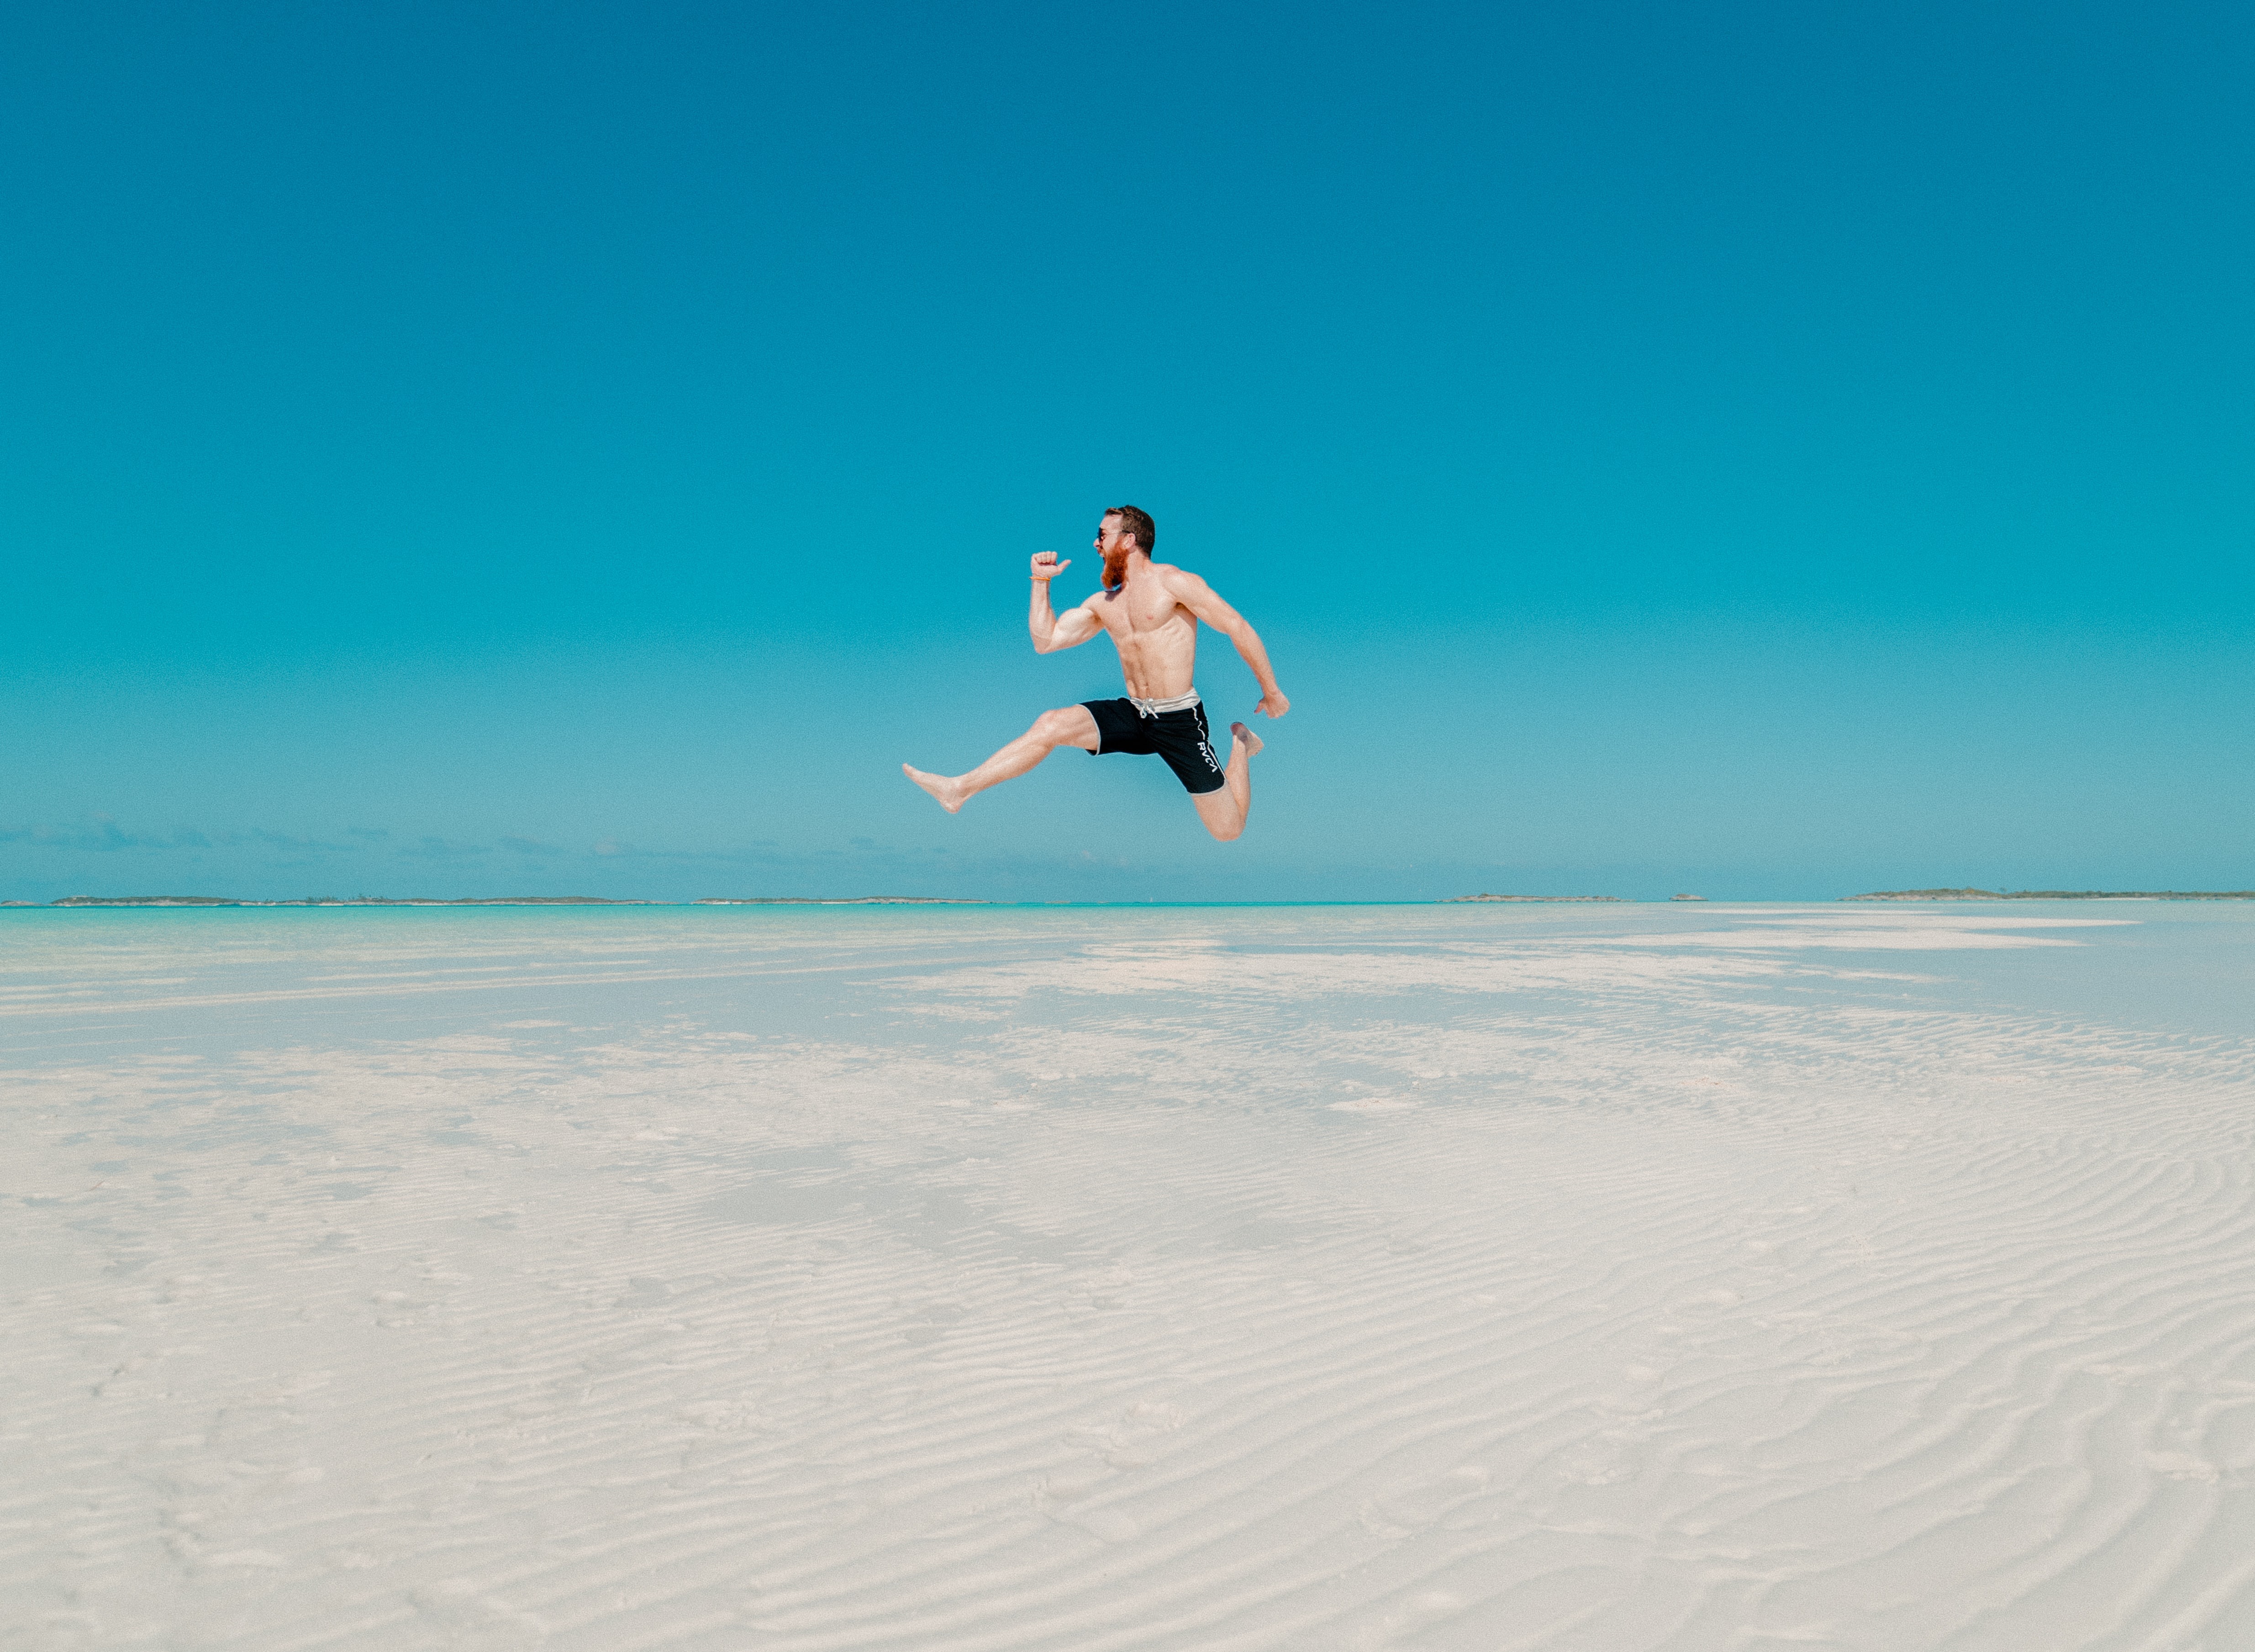 A shirtless muscular man in shorts in the middle of a high jump above a sandy beach